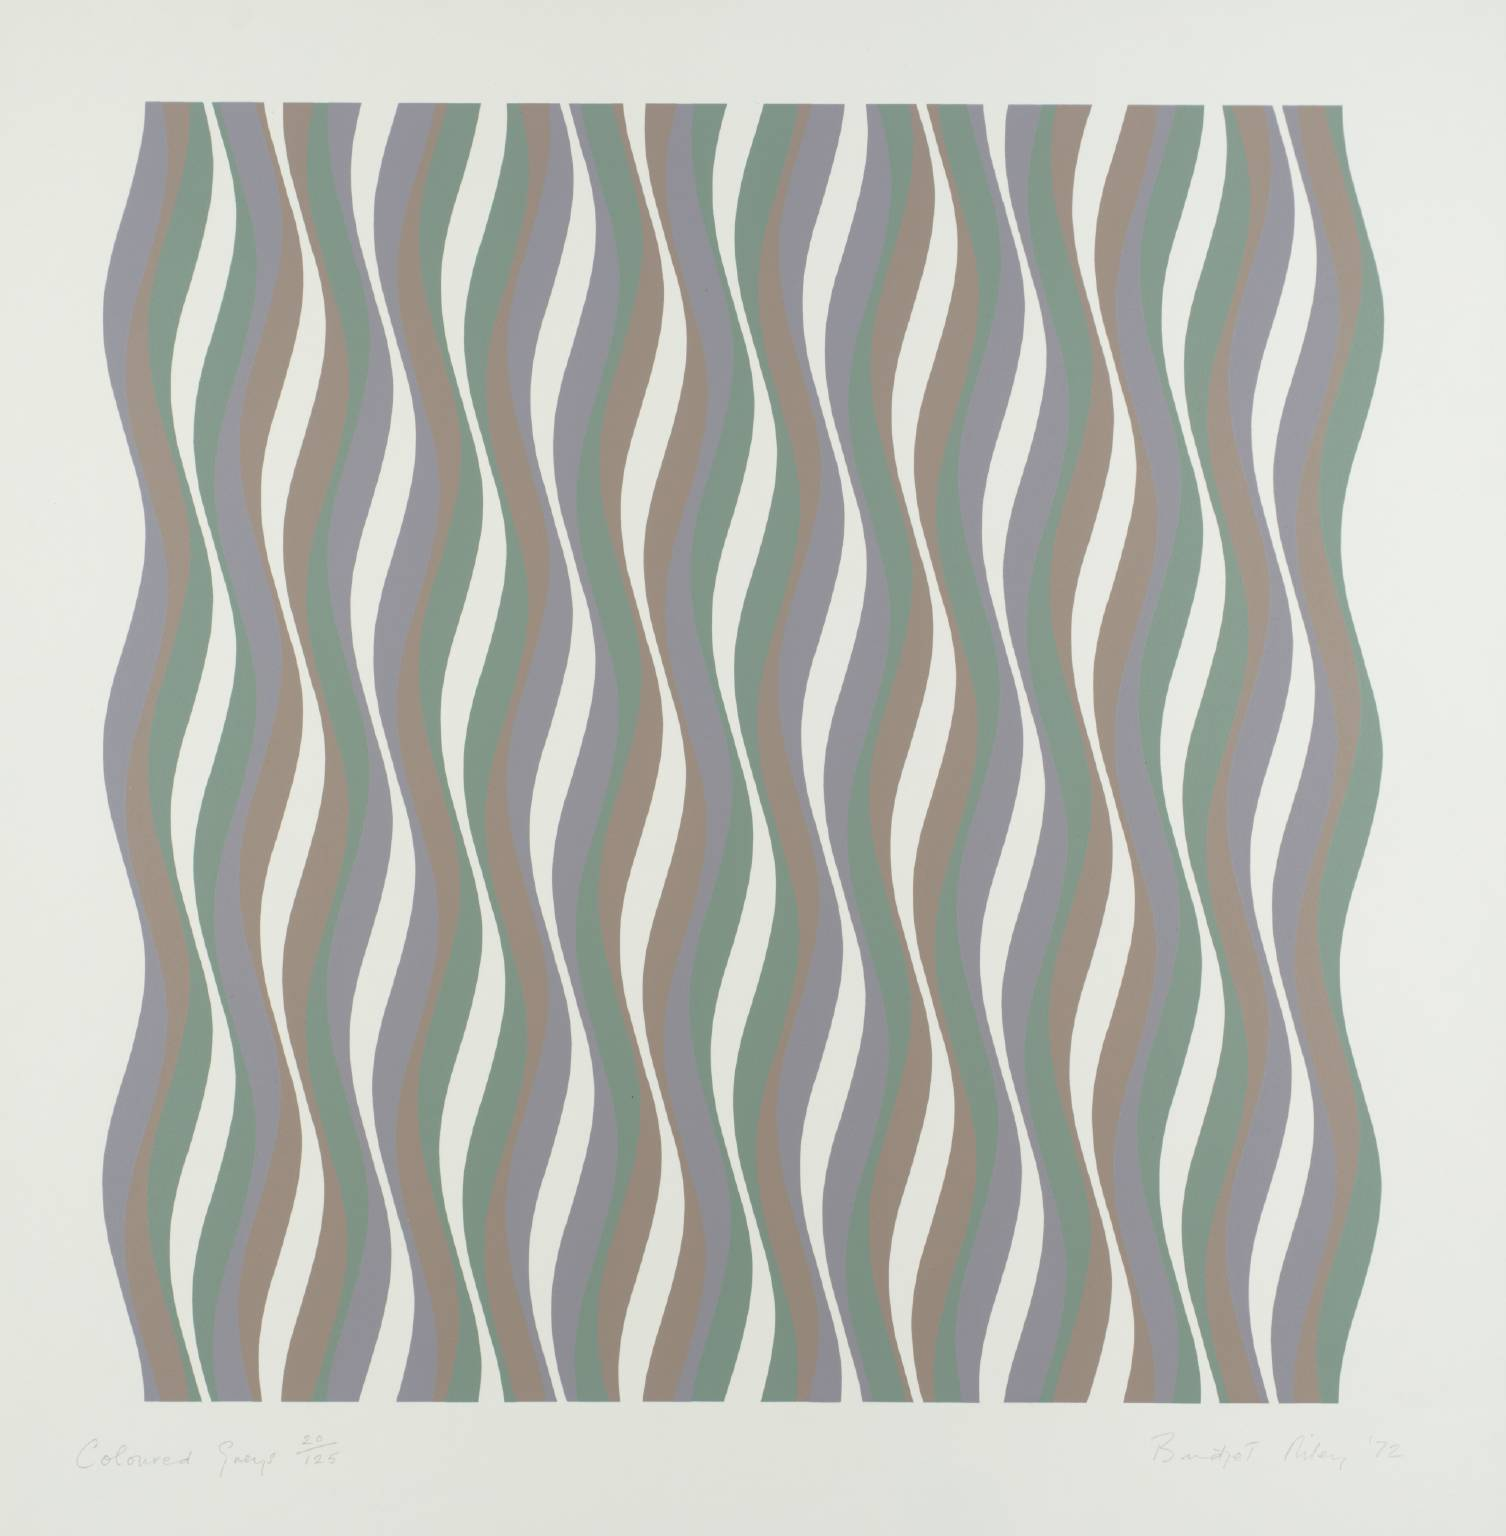 The Work of Bridget Riley: Juxtapoz-BridgetRiley13.jpg